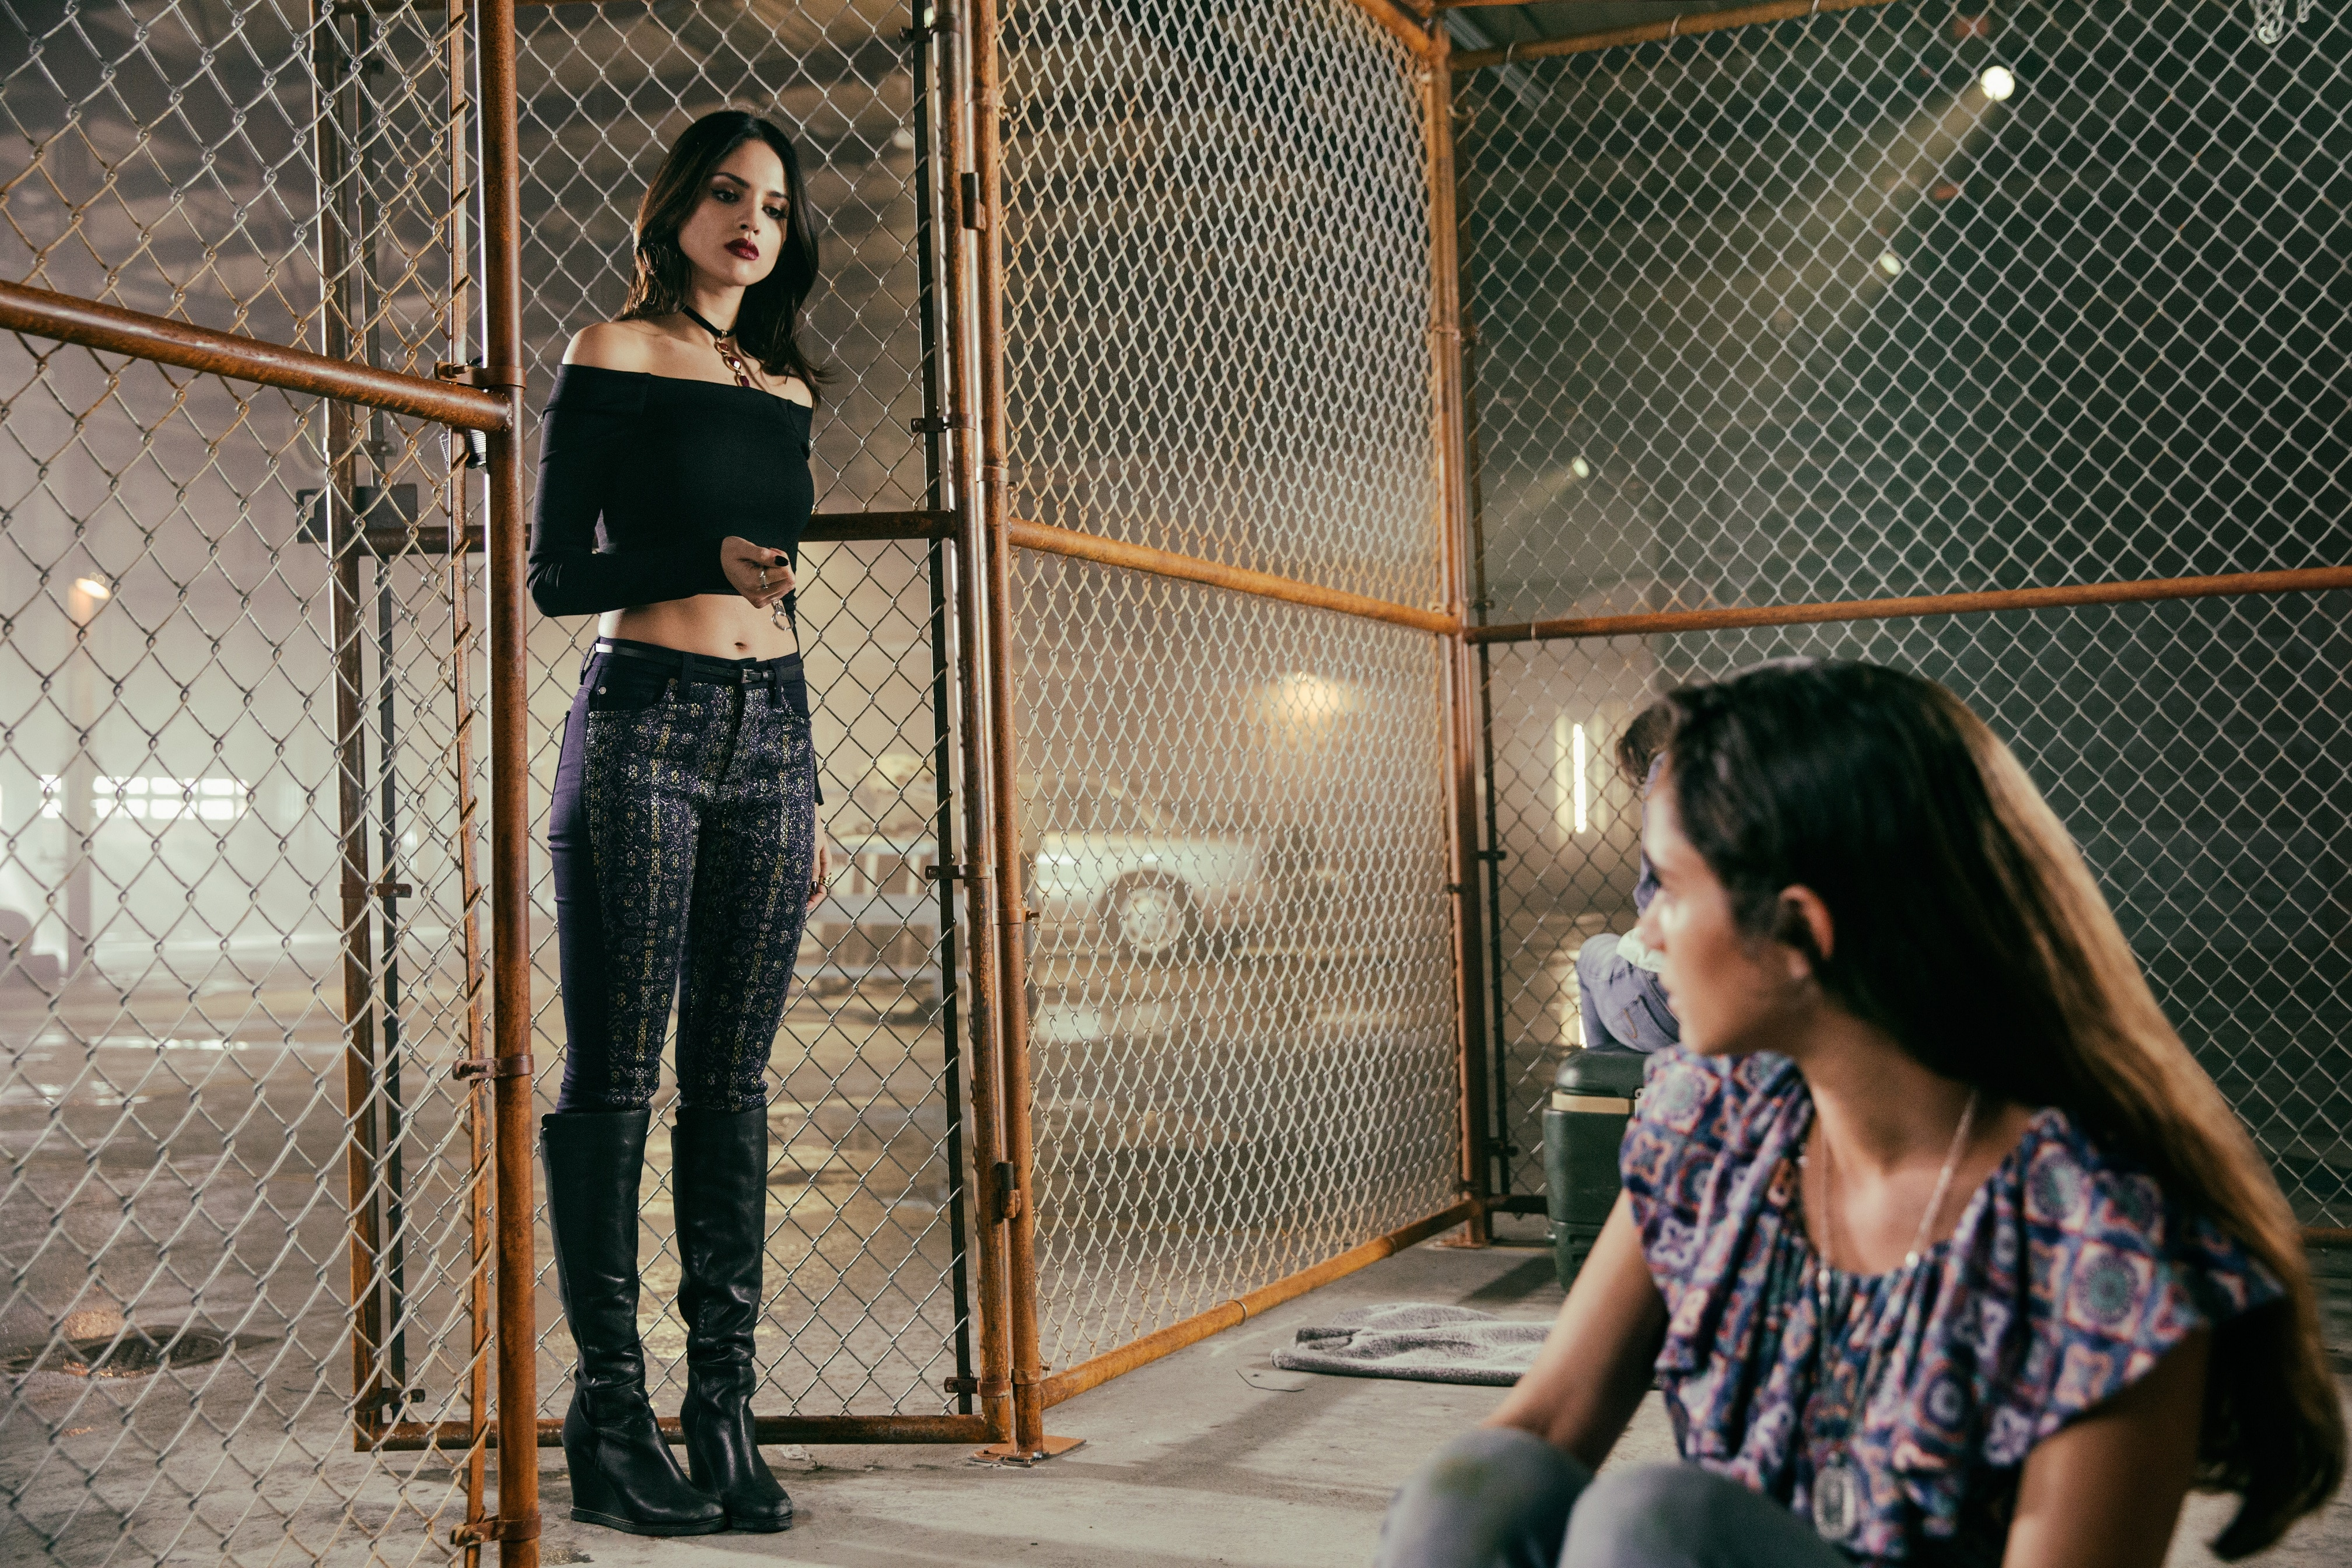 Eiza Gonzalez In From Dusk Till Dawn The Series Hd Tv Shows 4k